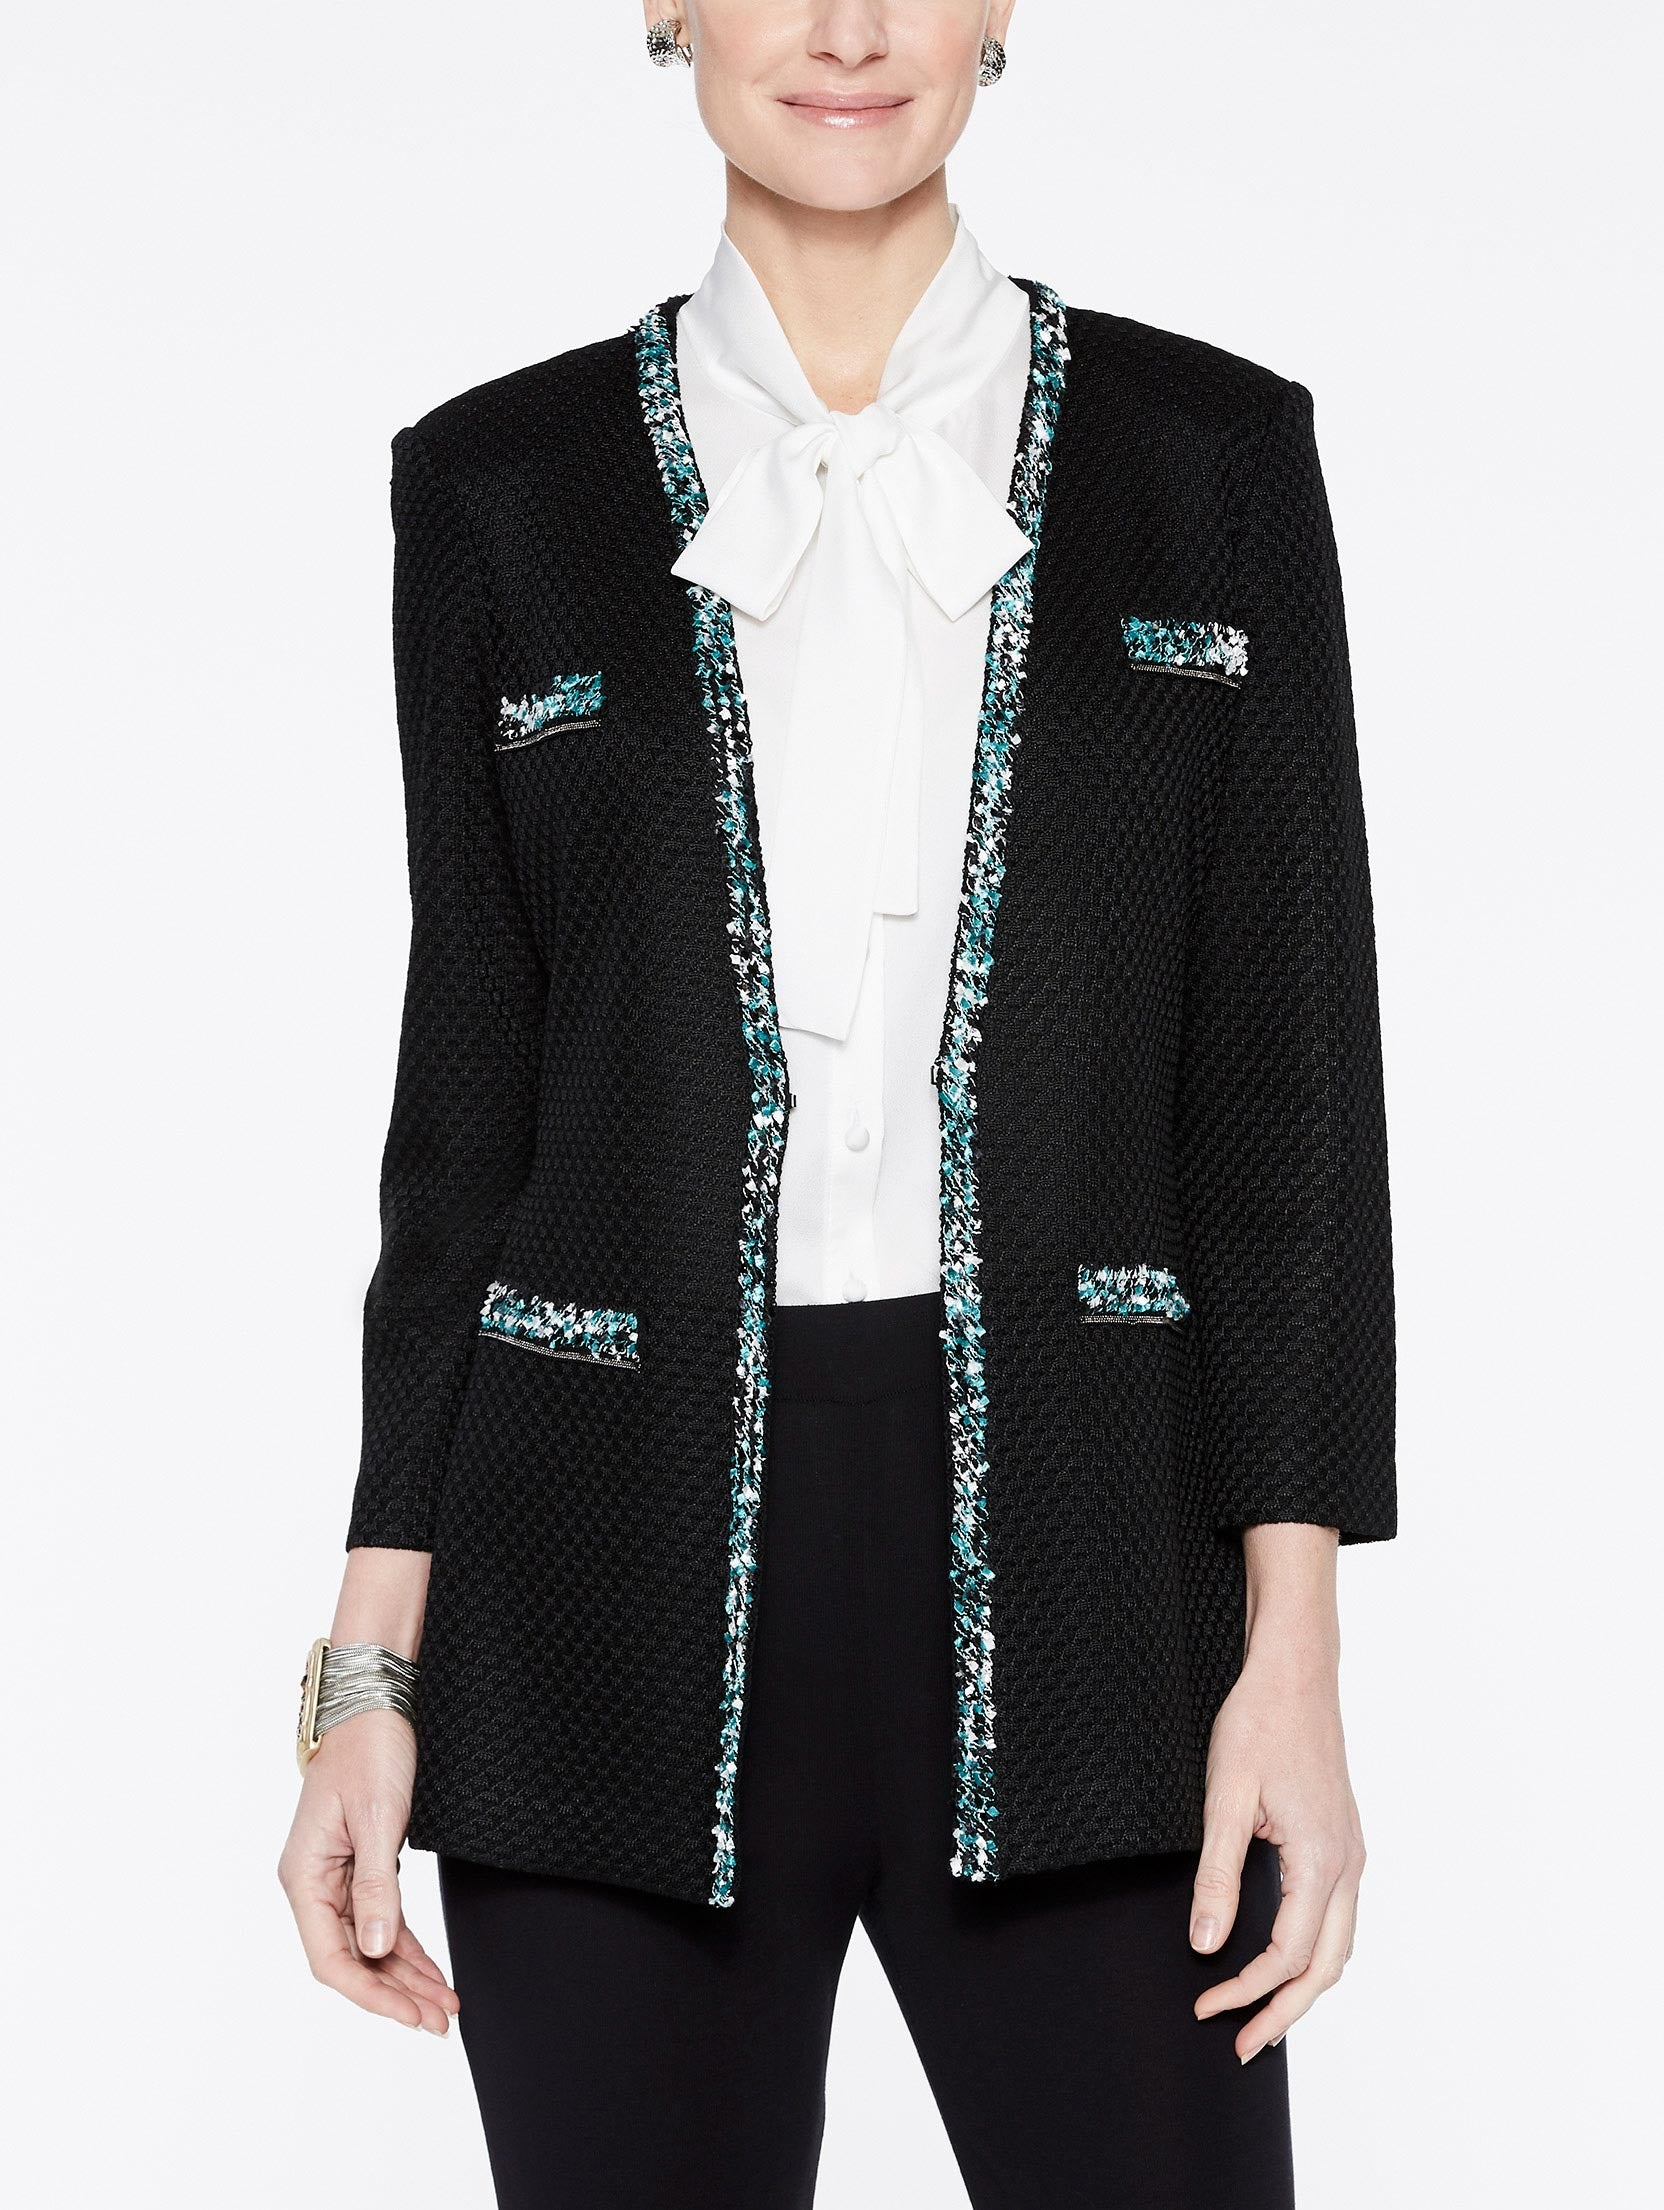 Multicolored Clipped Fringe Trim Jacket Color Black/Laguna Green/Ivory